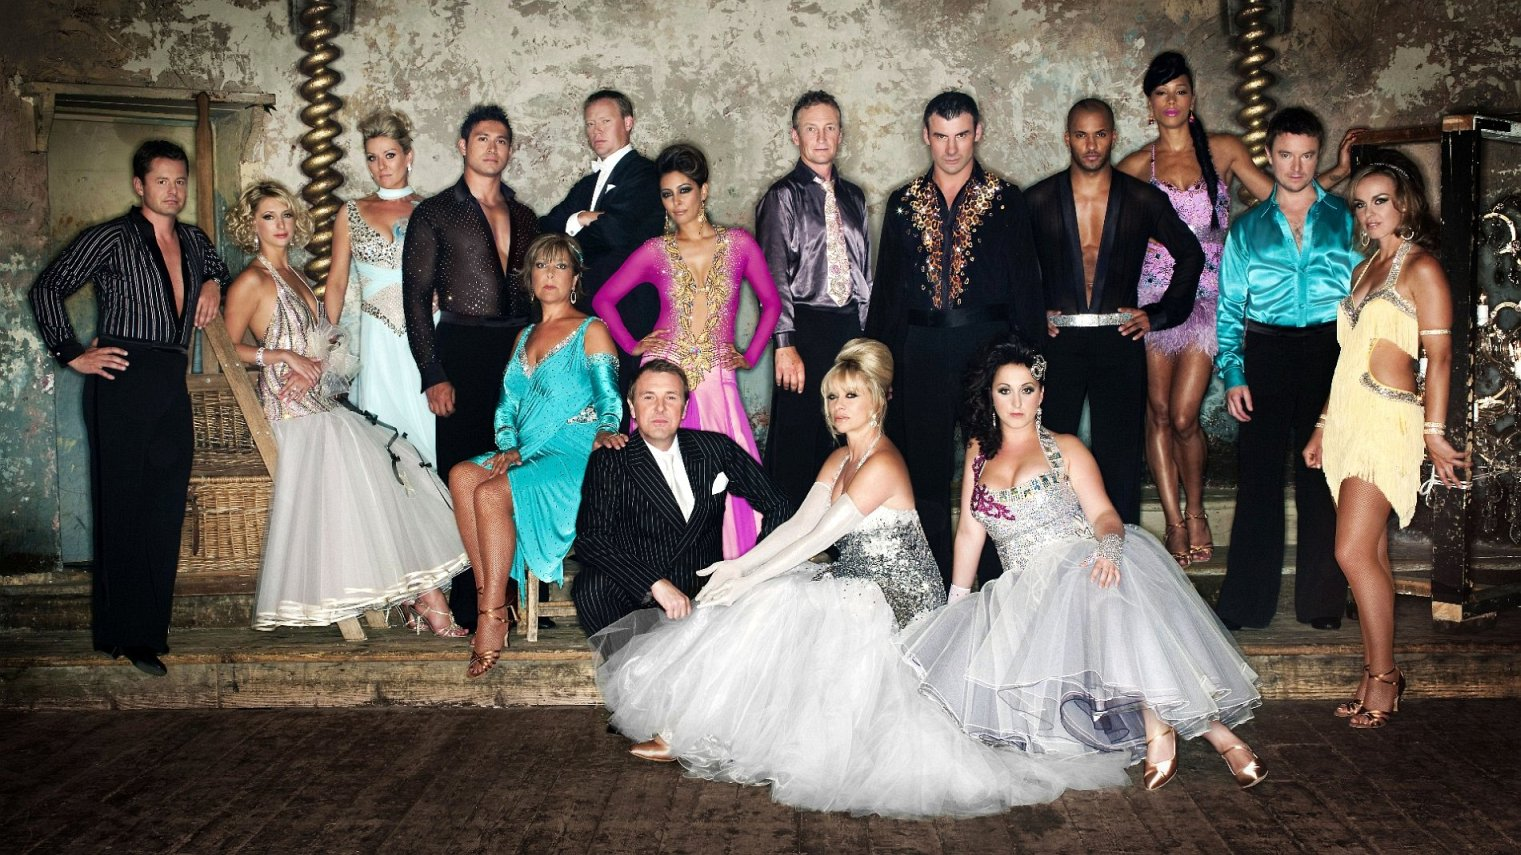 cast of Strictly Come Dancing season 3